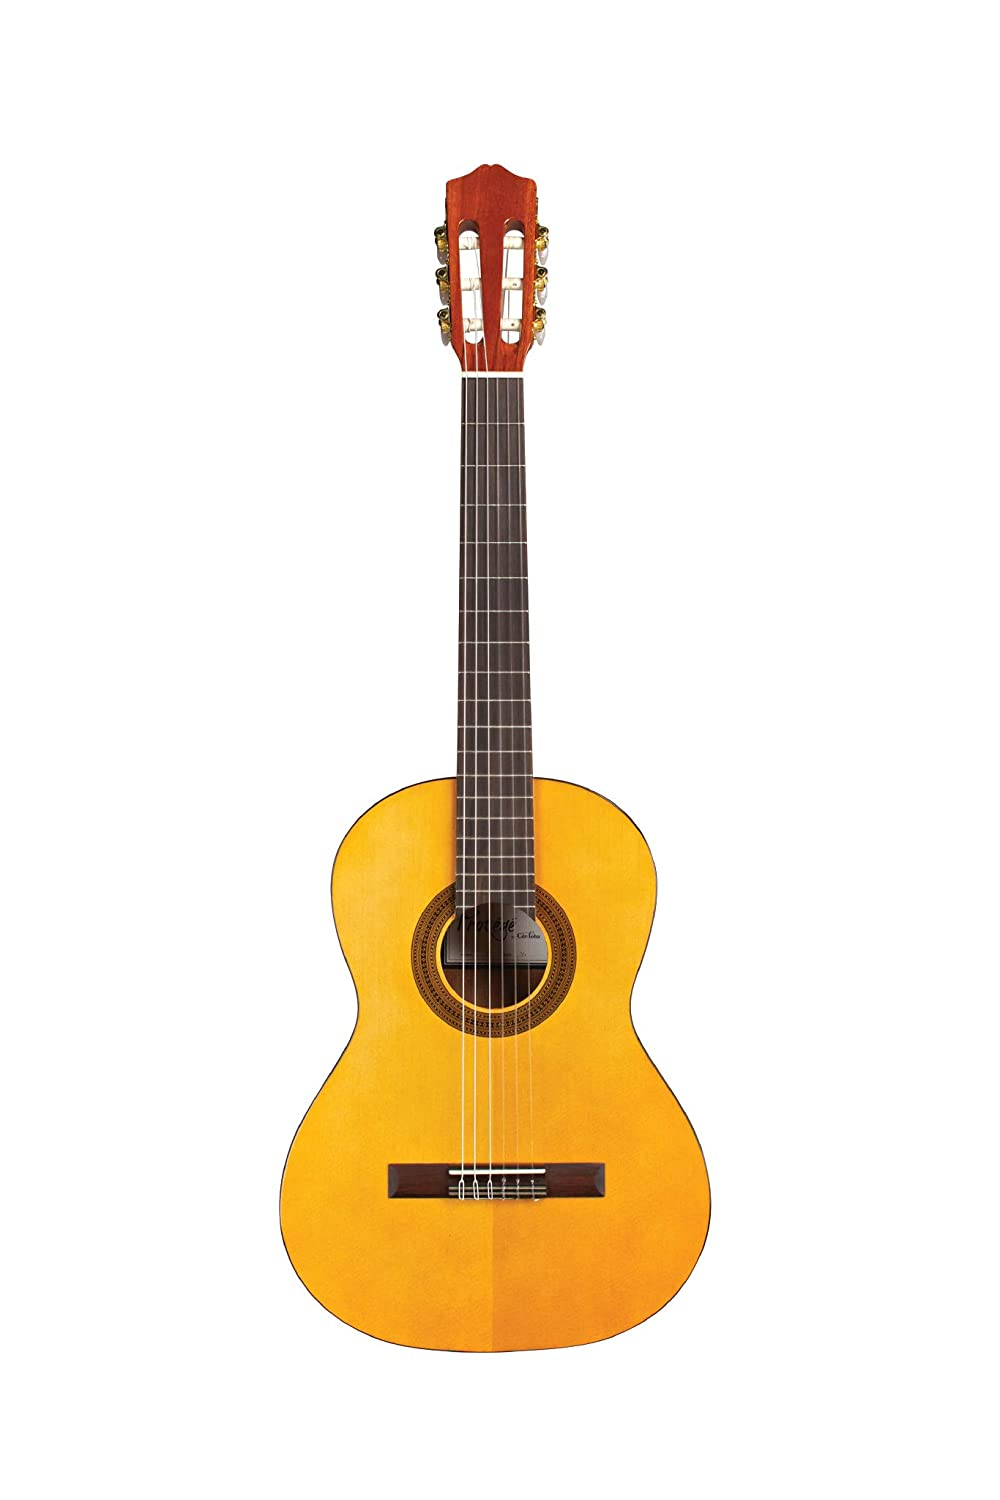 Cordoba C1 Protege Series Classical Guitar Natural with Bag